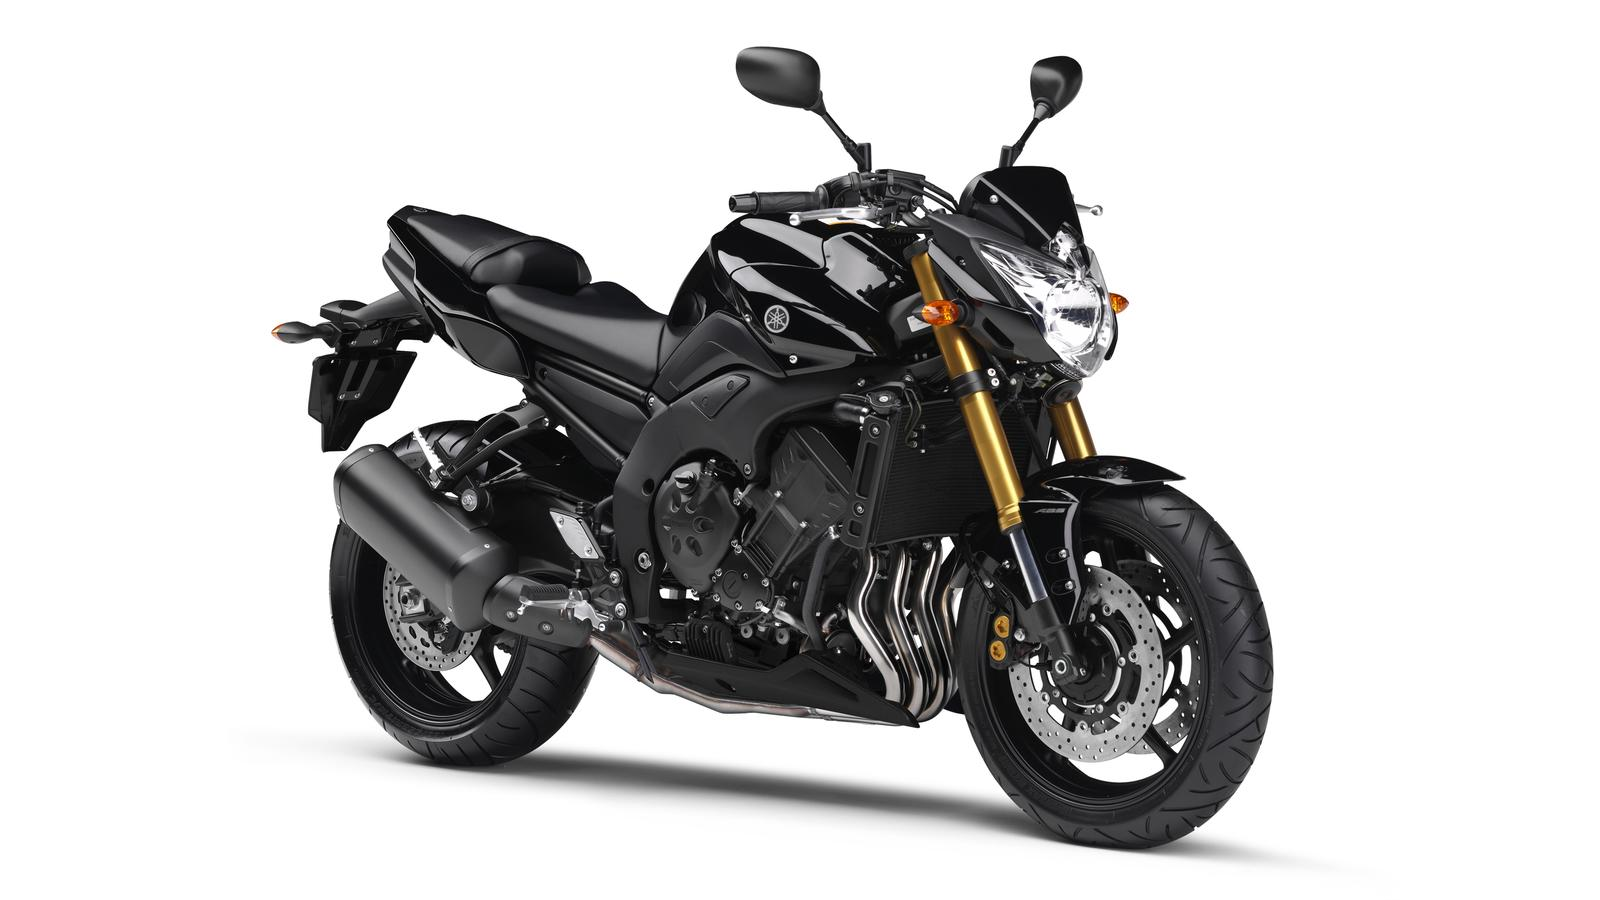 Yamaha fz8-n photo - 3